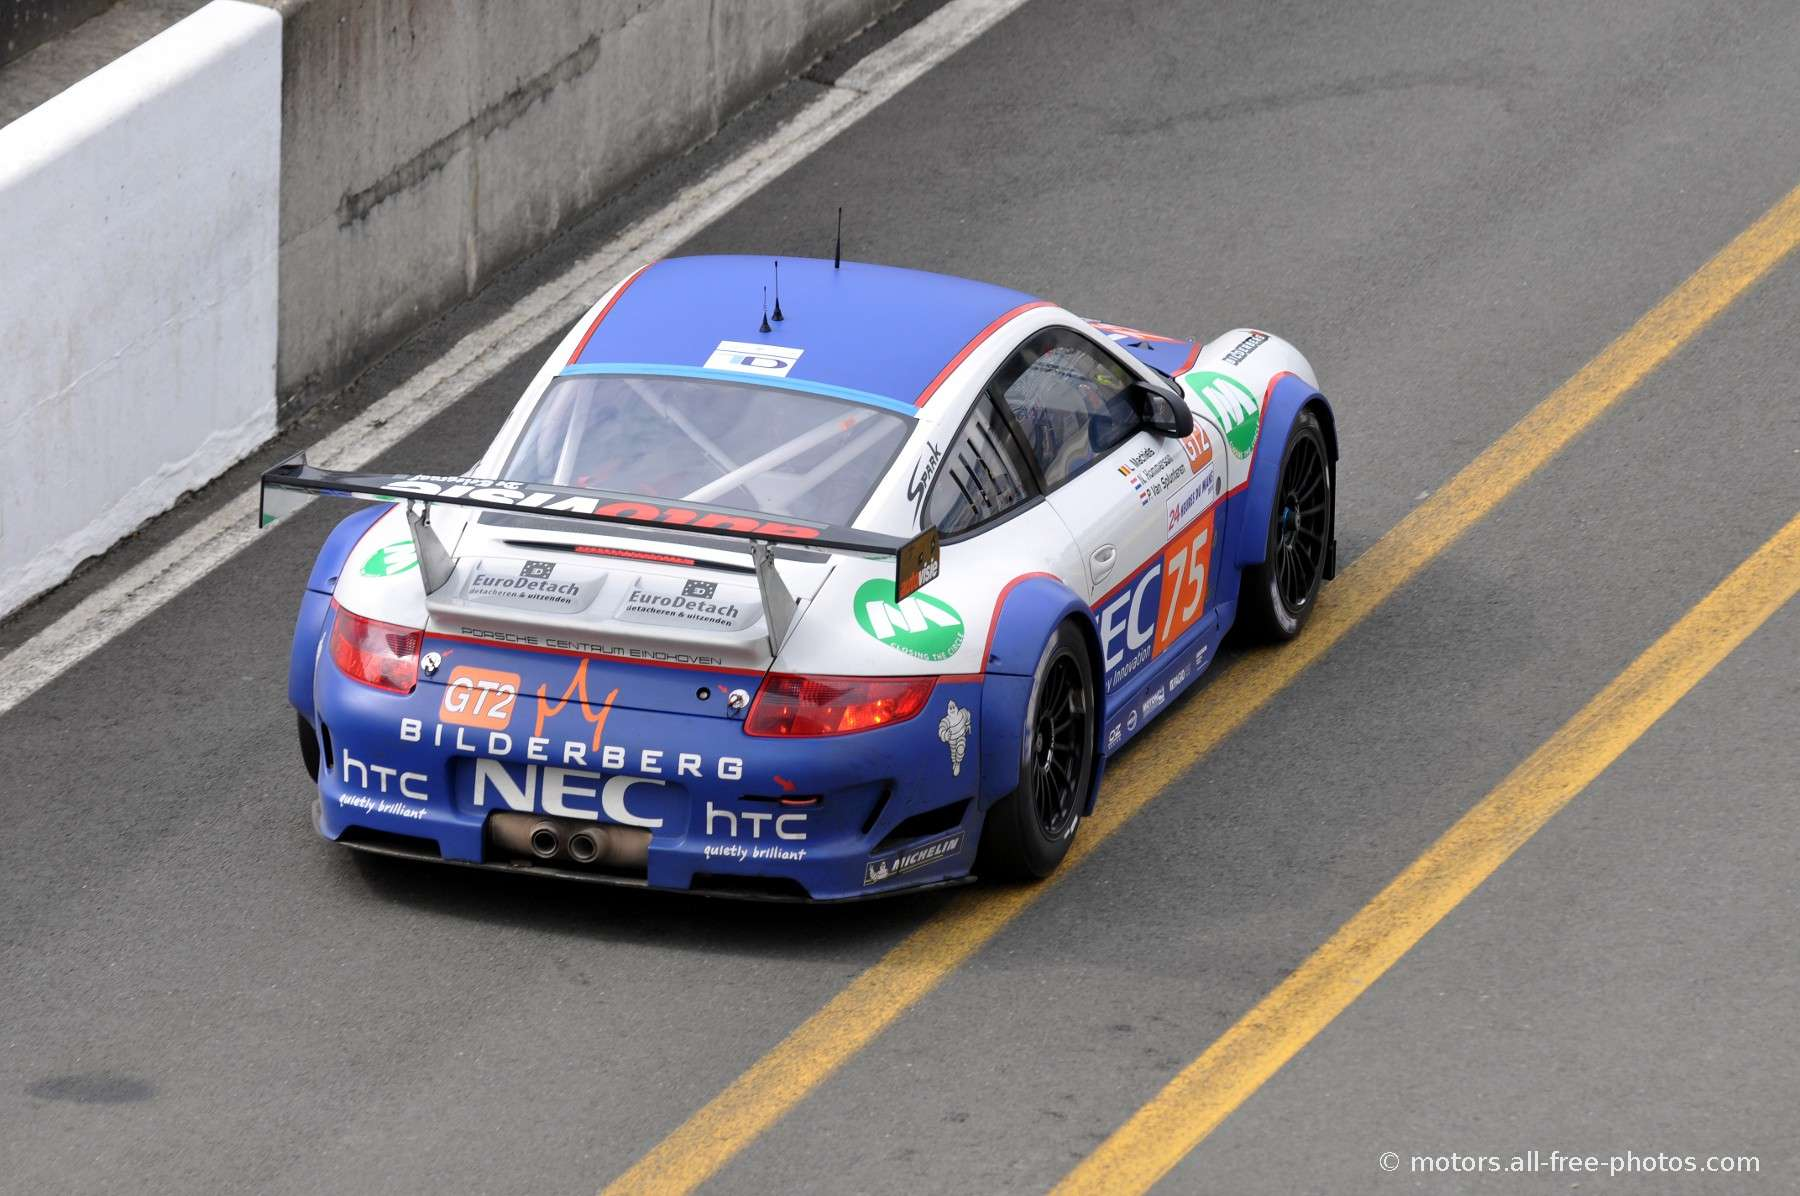 Porsche 997 GT3 RSR - Team Prospeed Competition